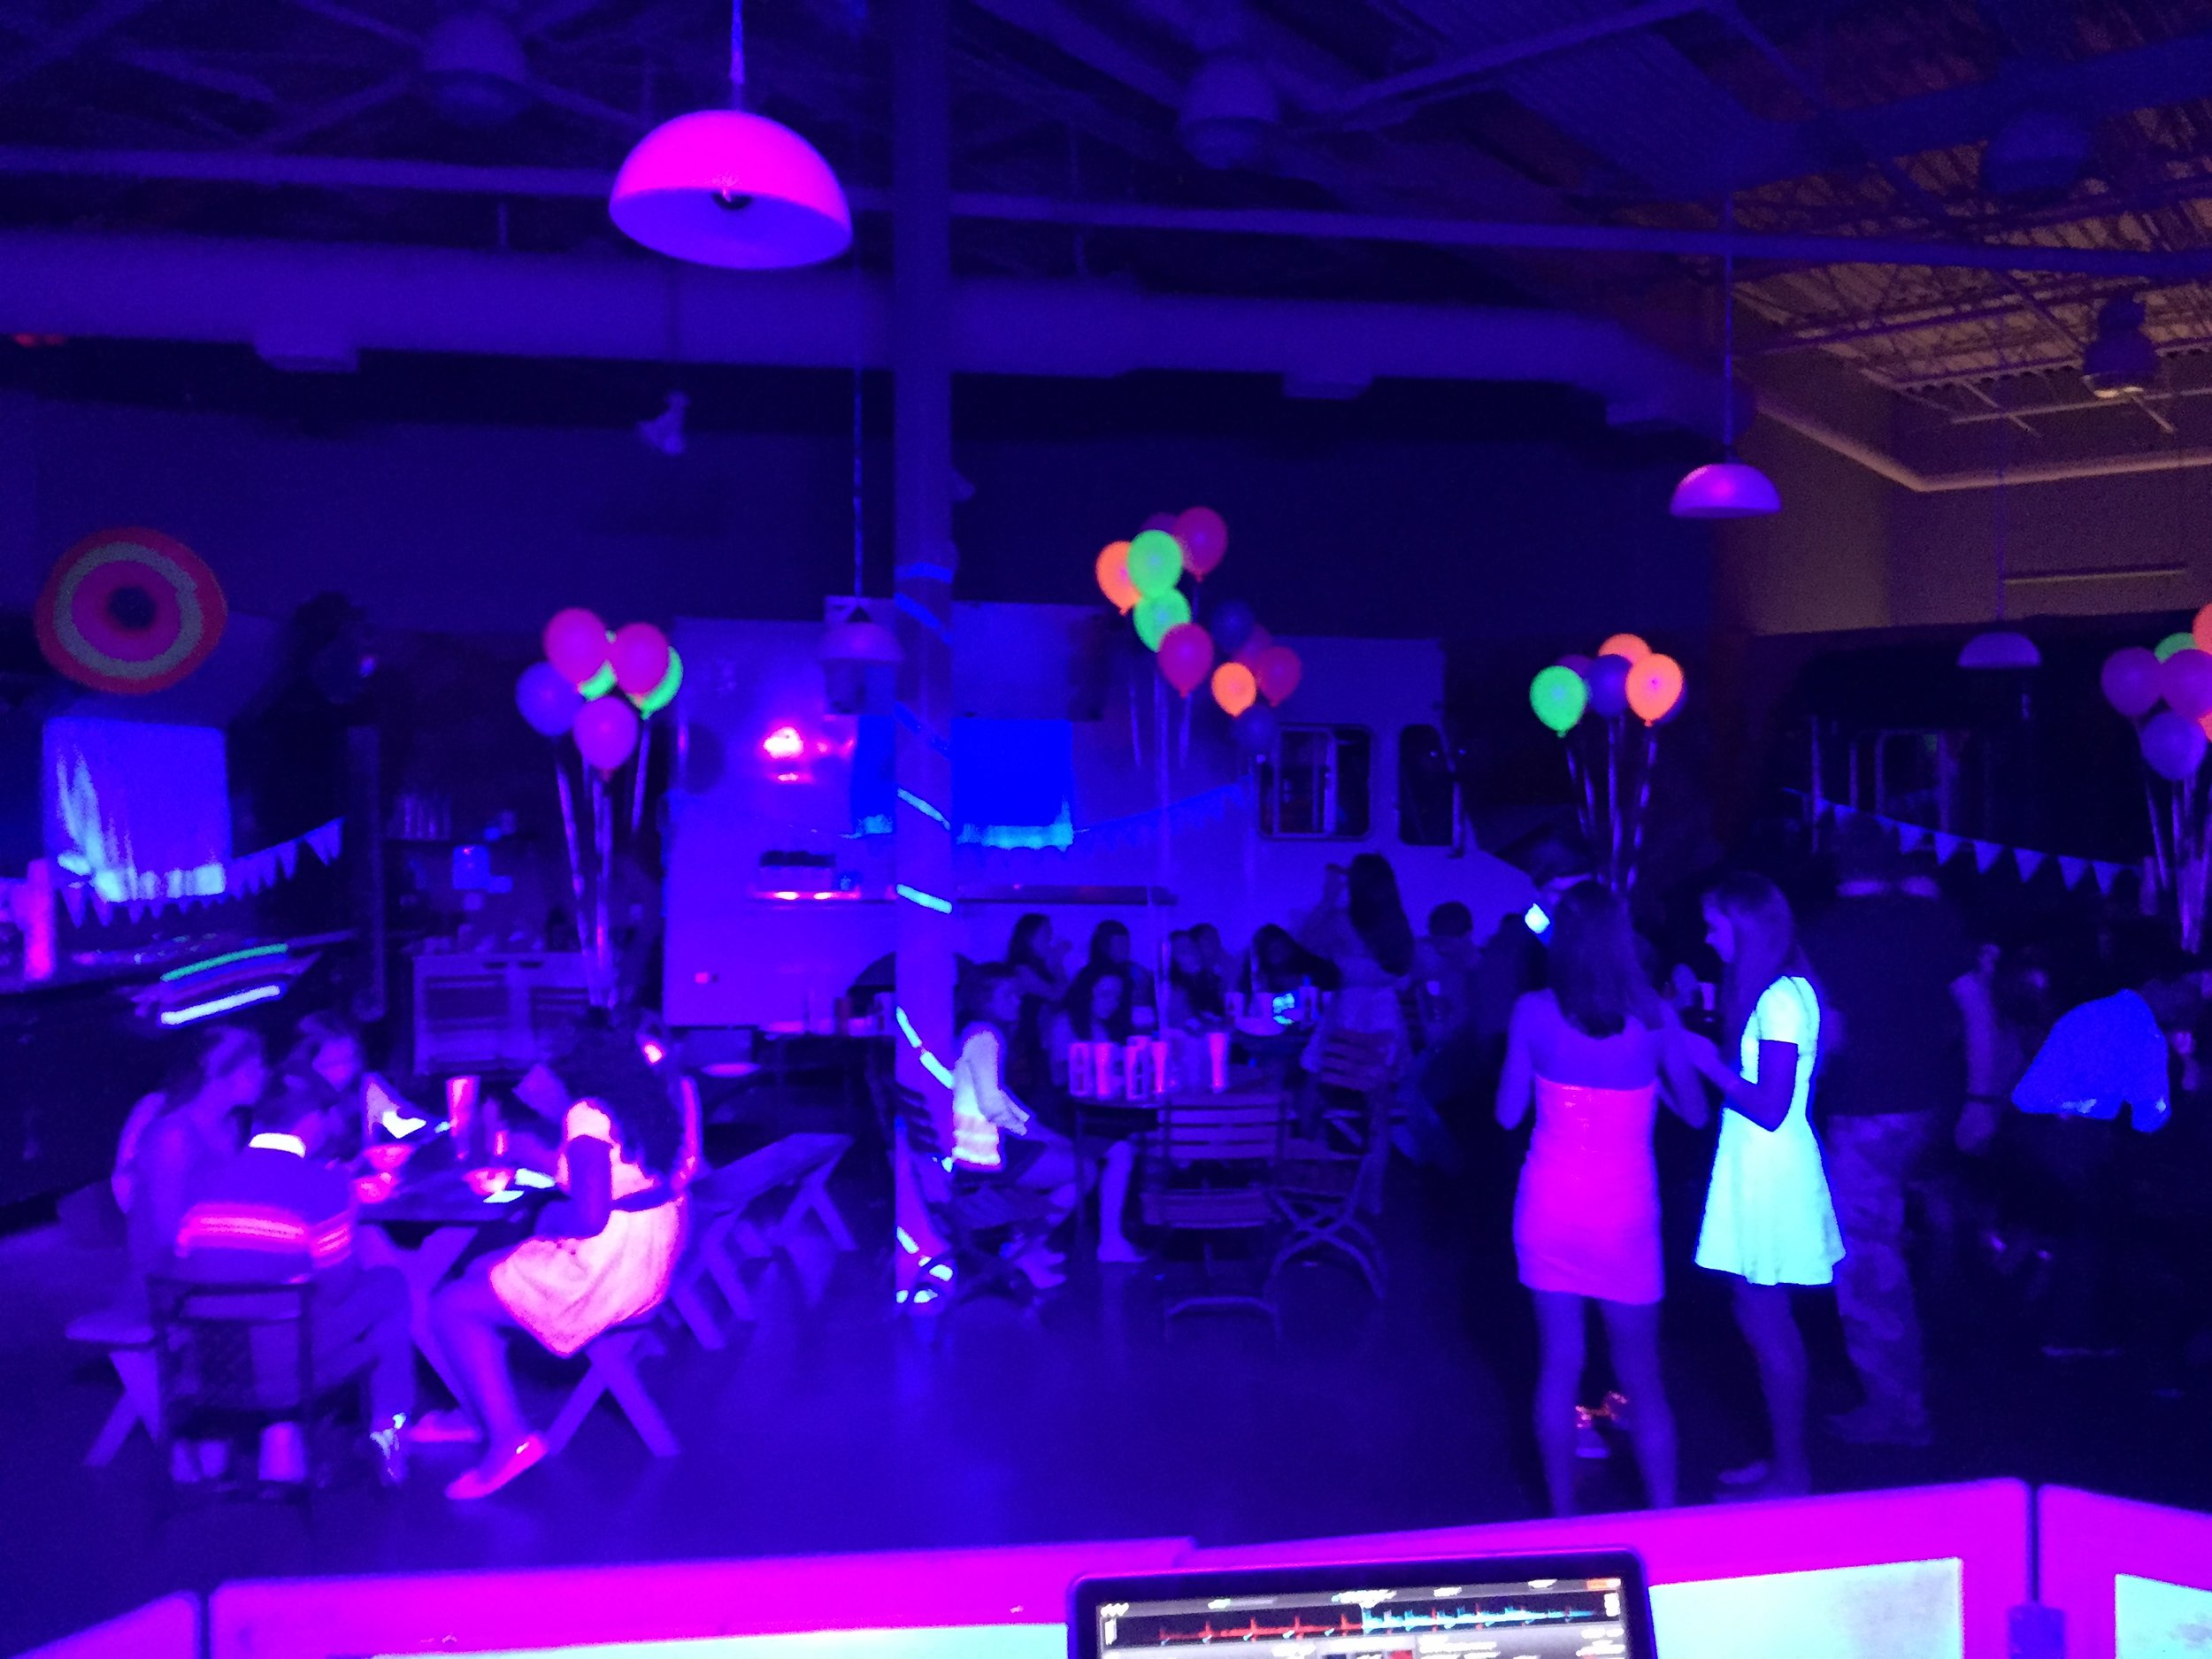 Black Lighting $299 - Add high powered Black Lighting for the ultimate GLOW Party!